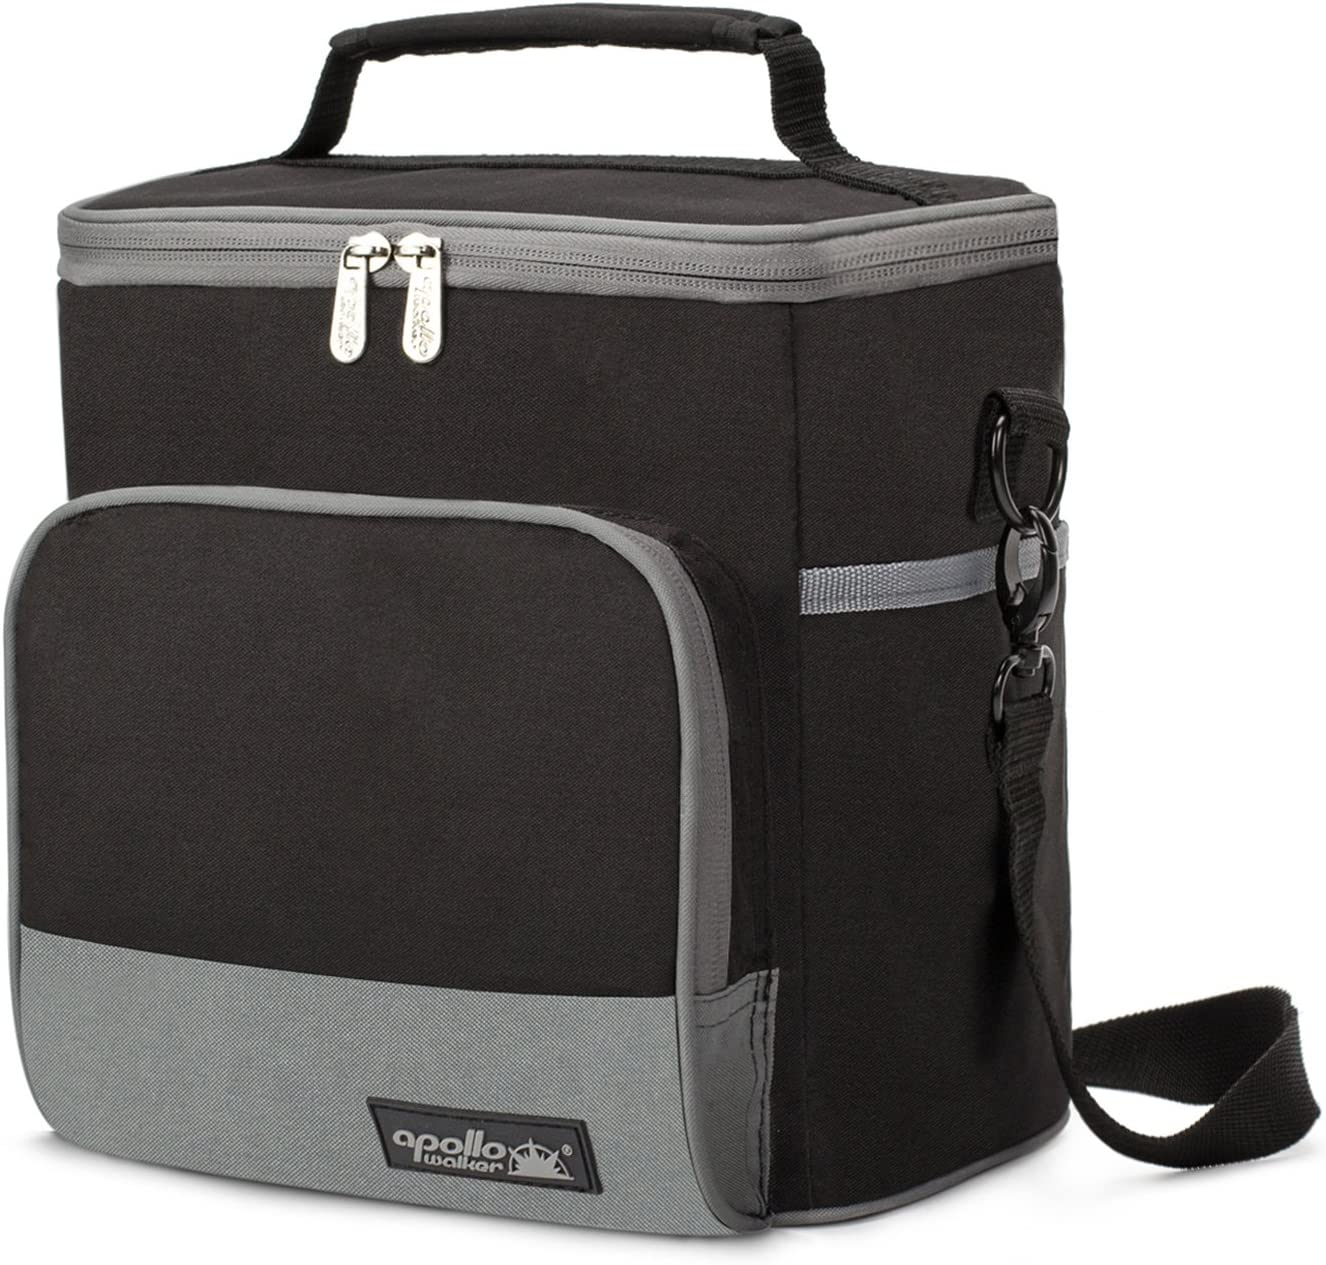 Apollo Walker Lunch Box Insulated Lunch Bag Large Foldable Waterproof Cooler Picnic Tote Bag for Adult Men, Women, Black